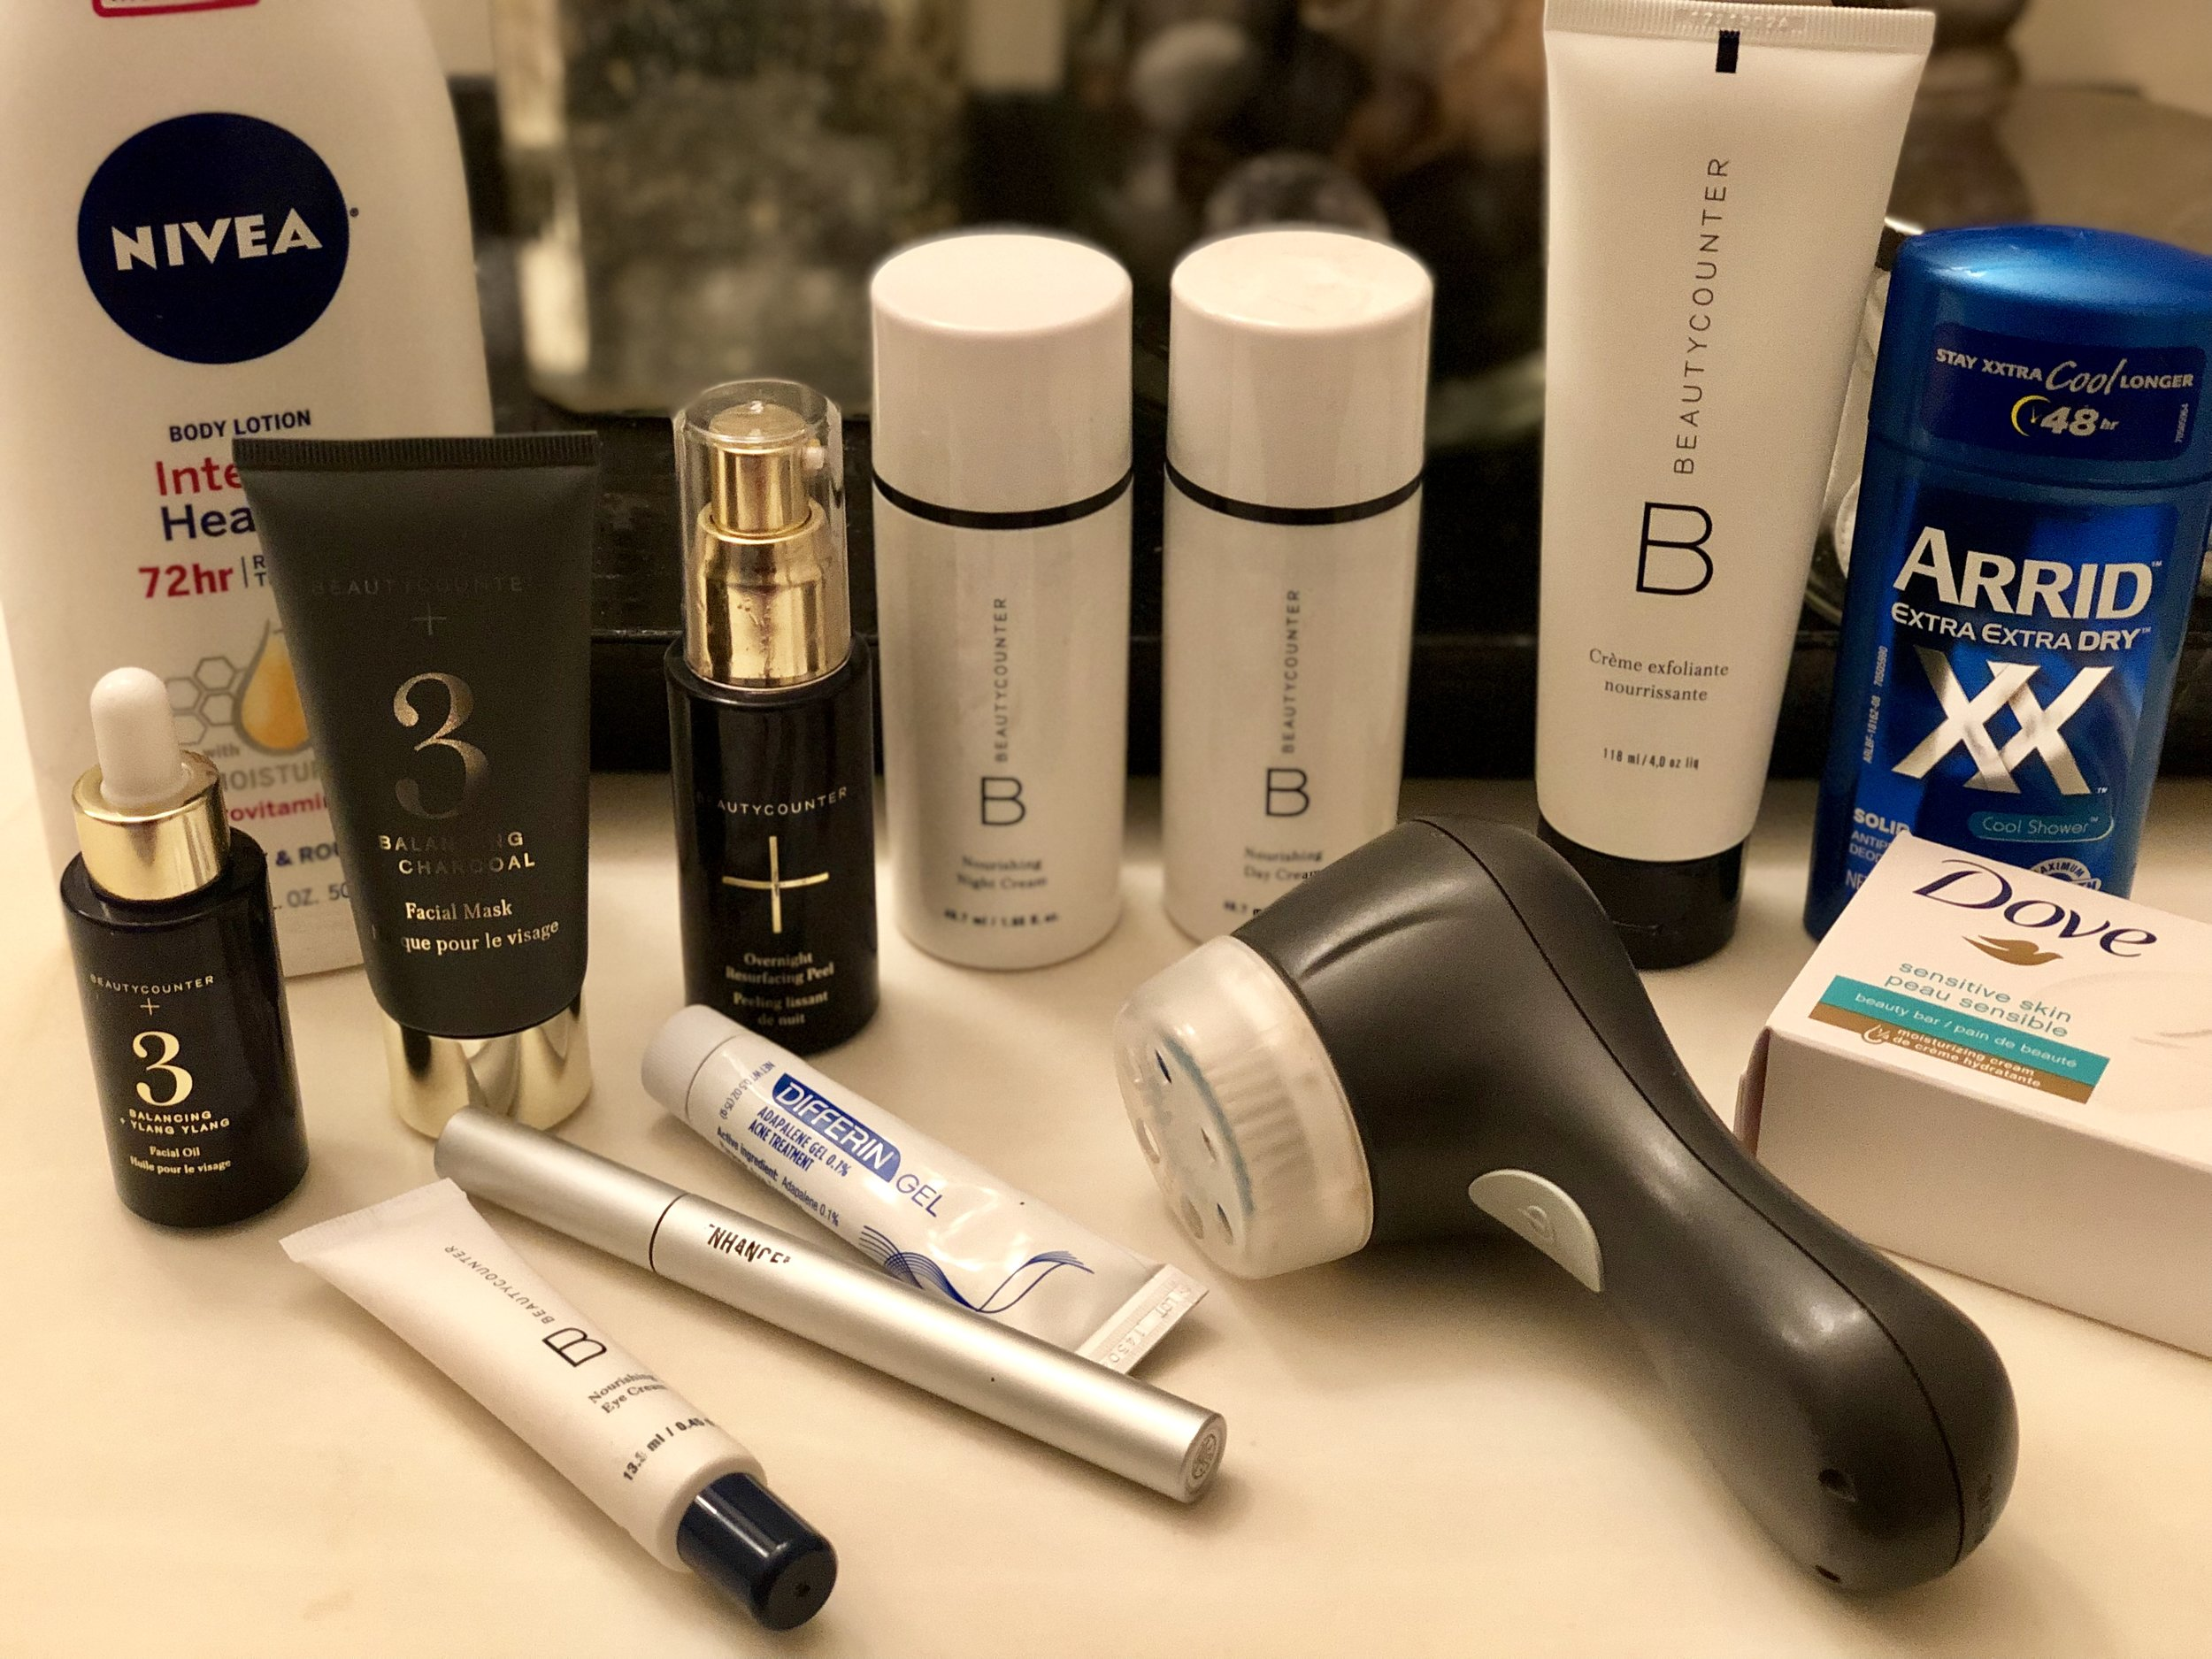 #SkinBabe Lauren Petersen shares some of her favorite products!